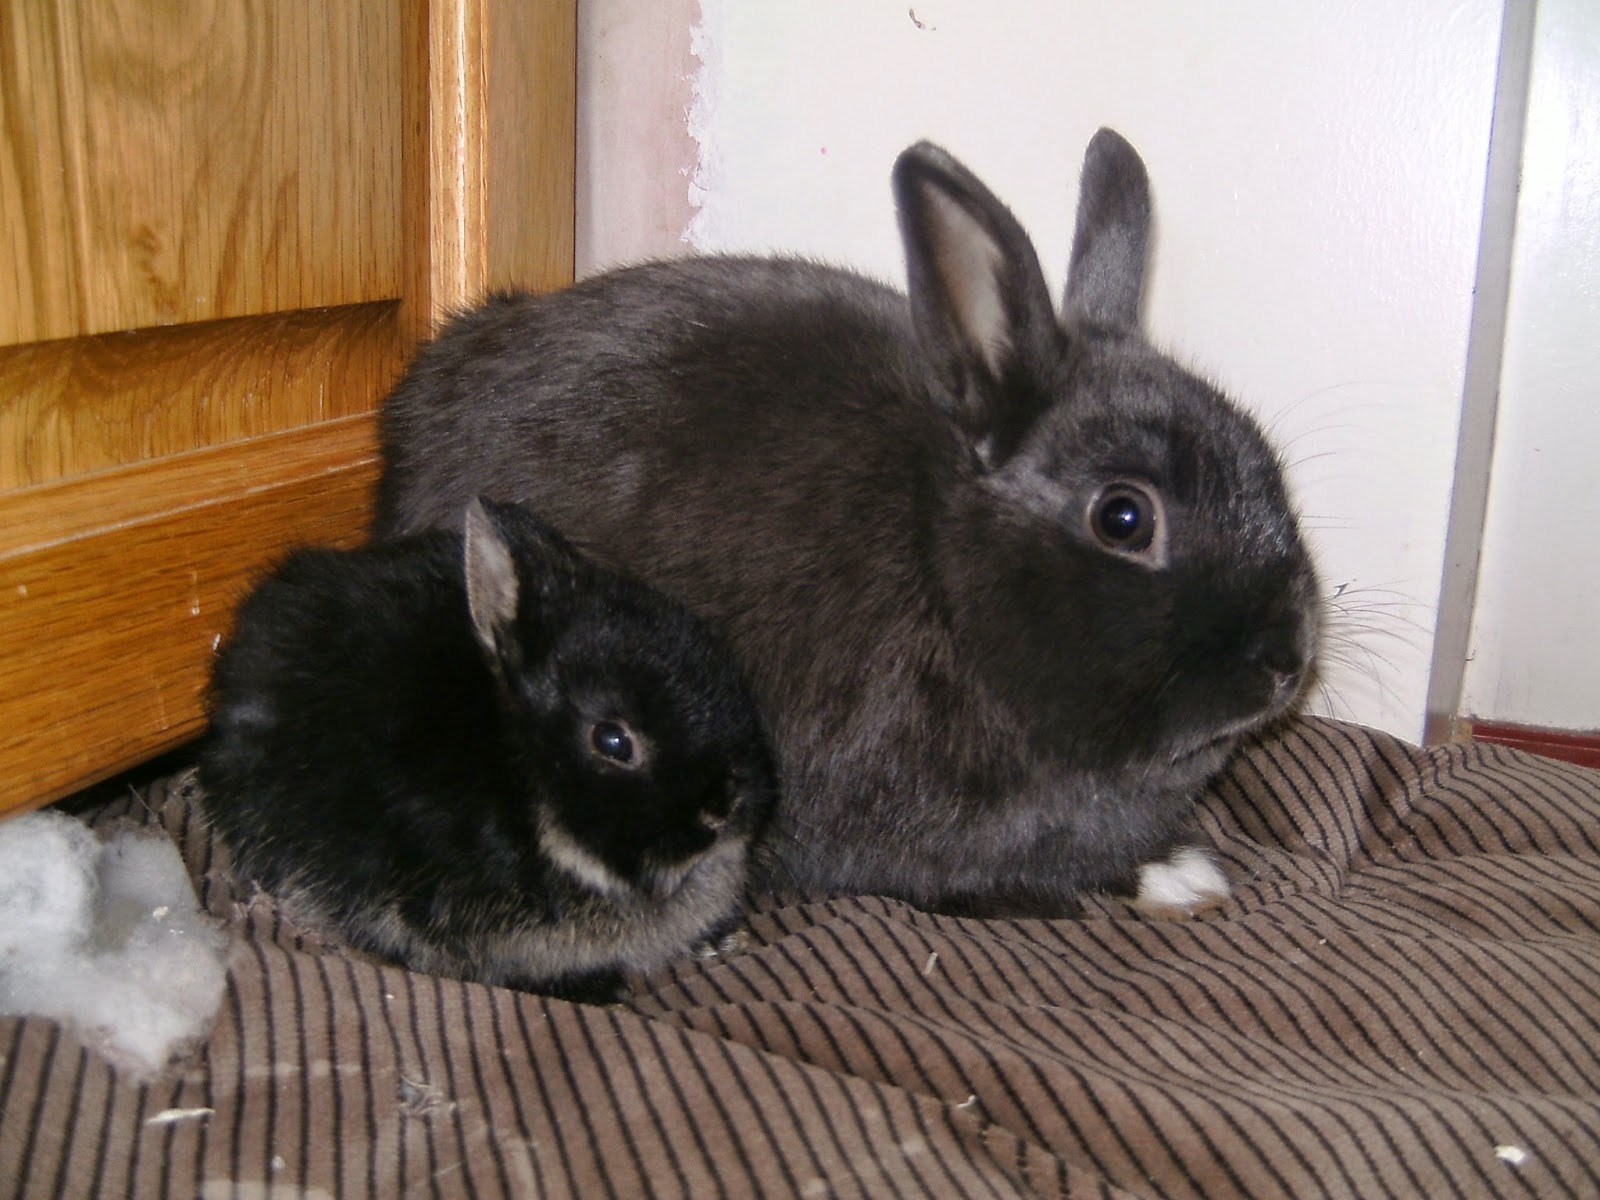 father & son, bebe, mr socks, rabbits